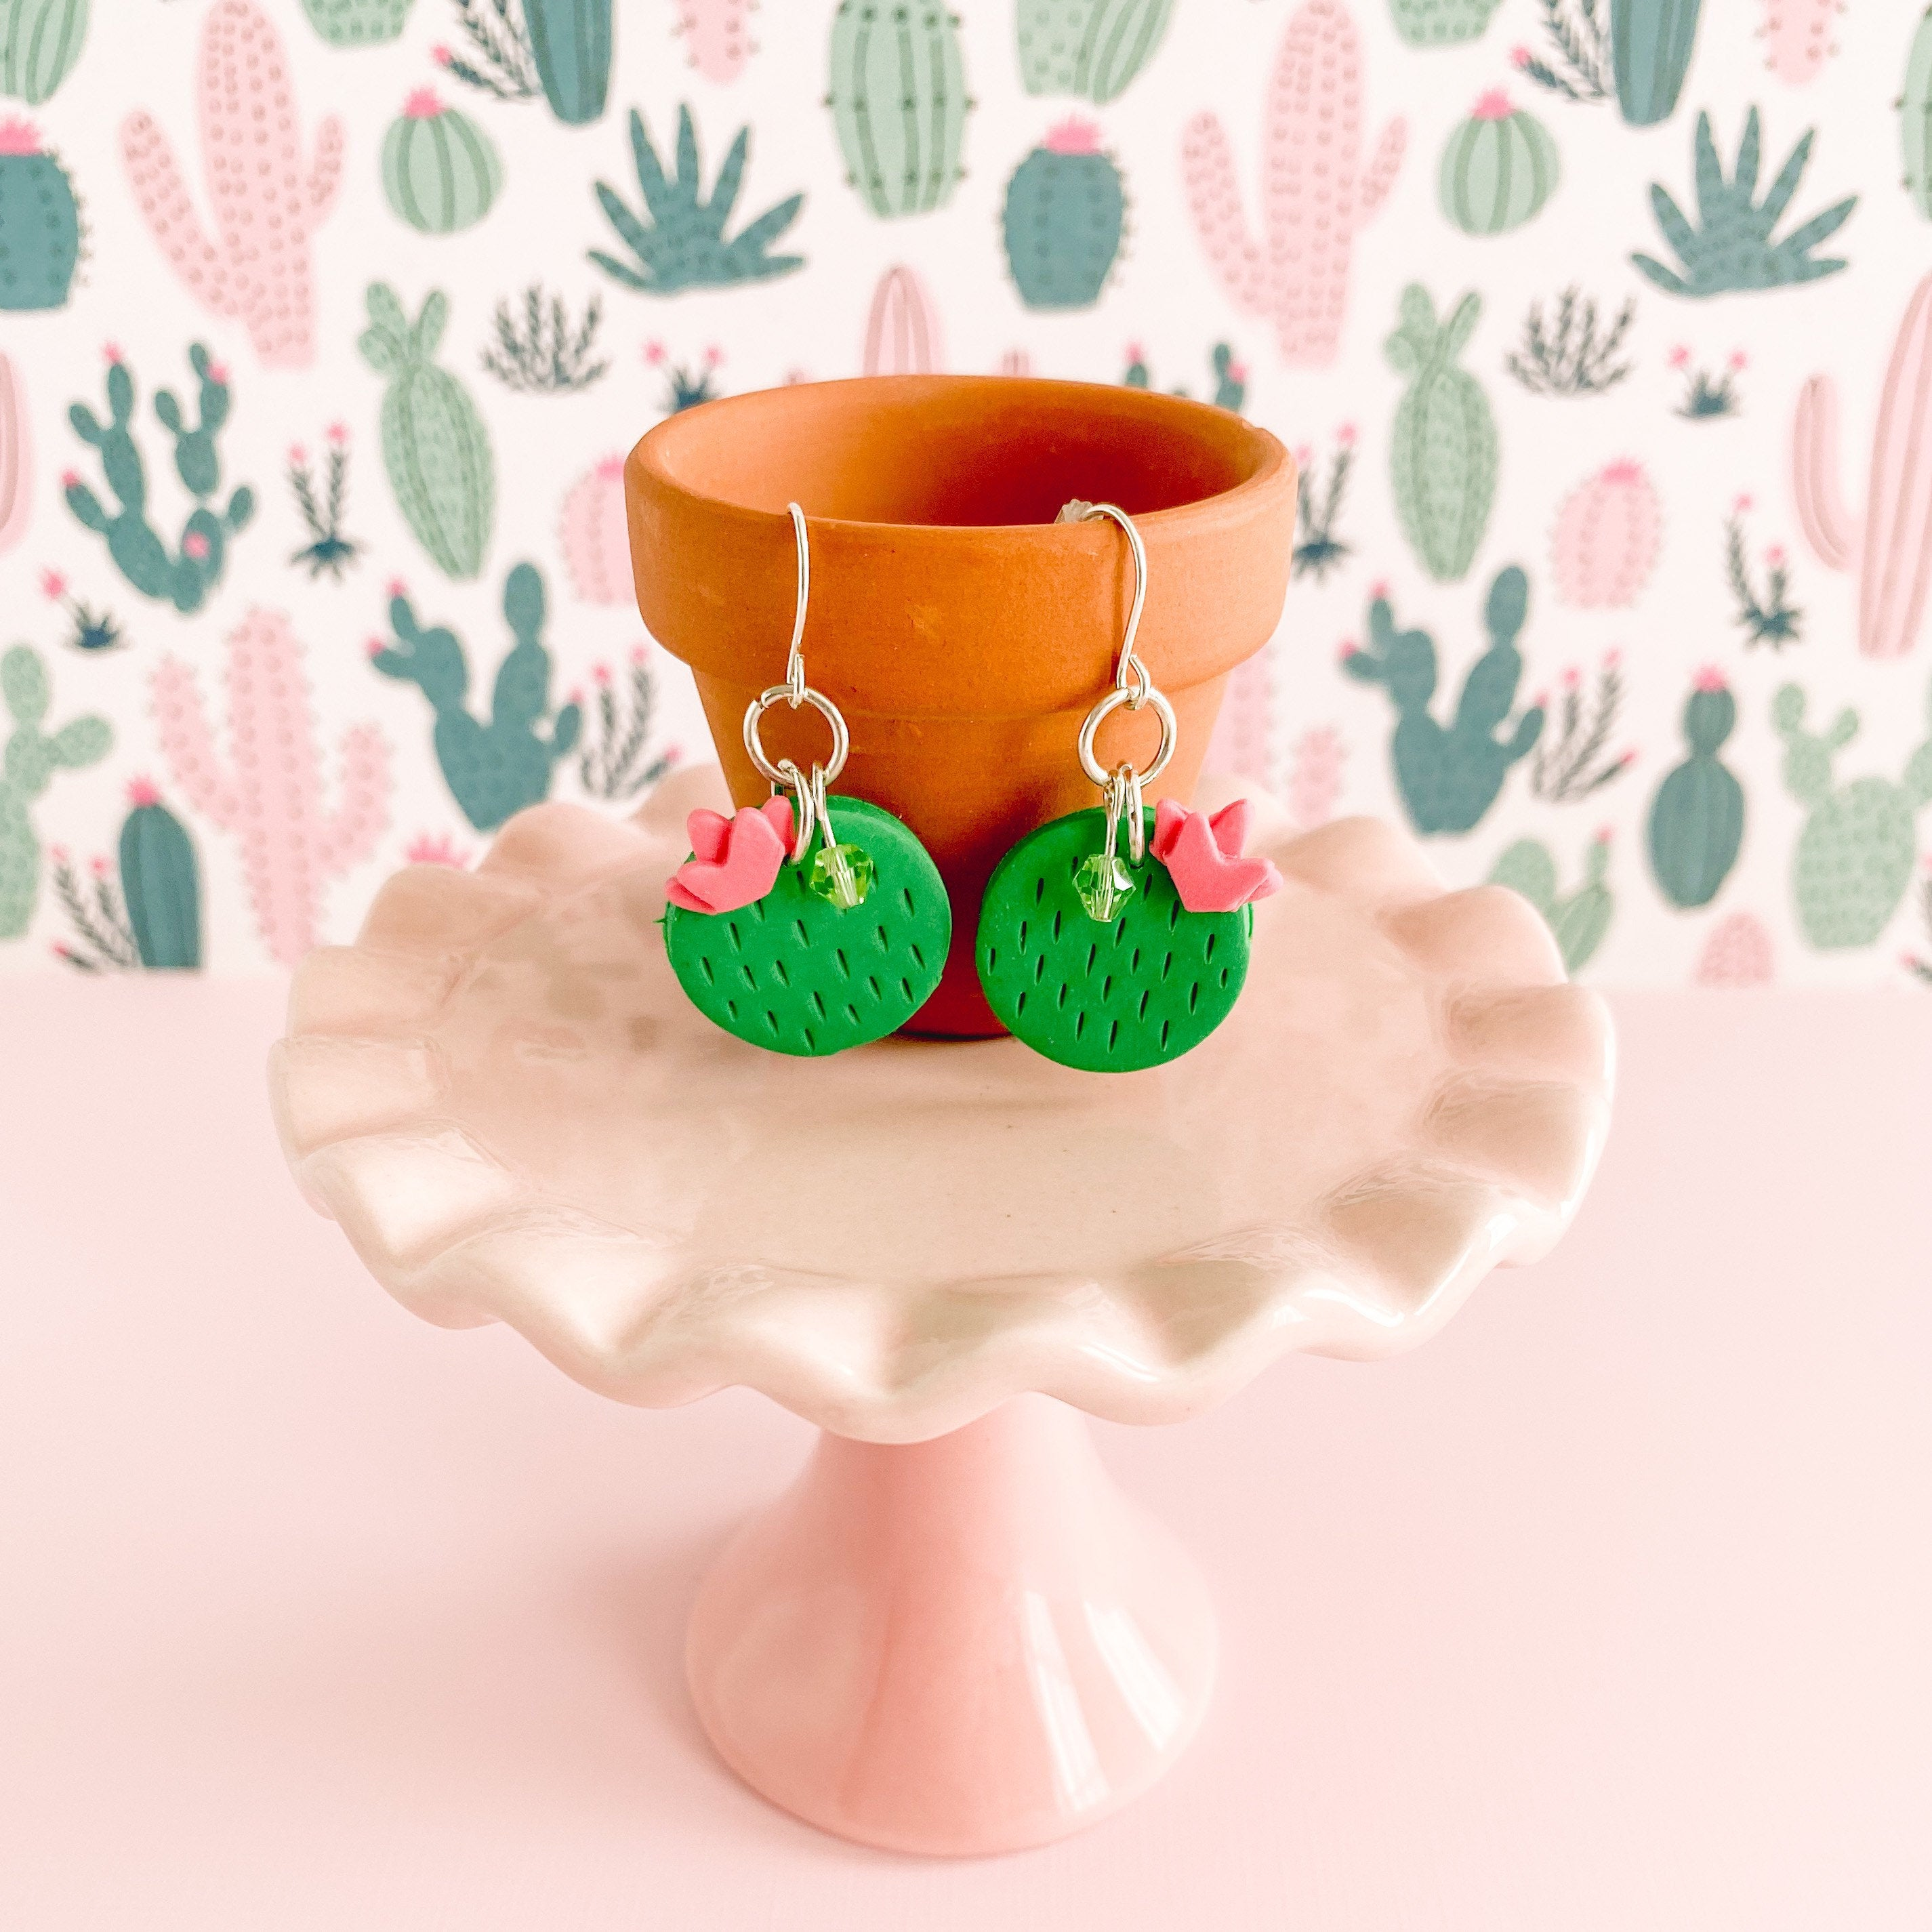 fireflyFrippery Cute Chic Cactus Earrings Hanging from Miniature Terra Cotta Pot